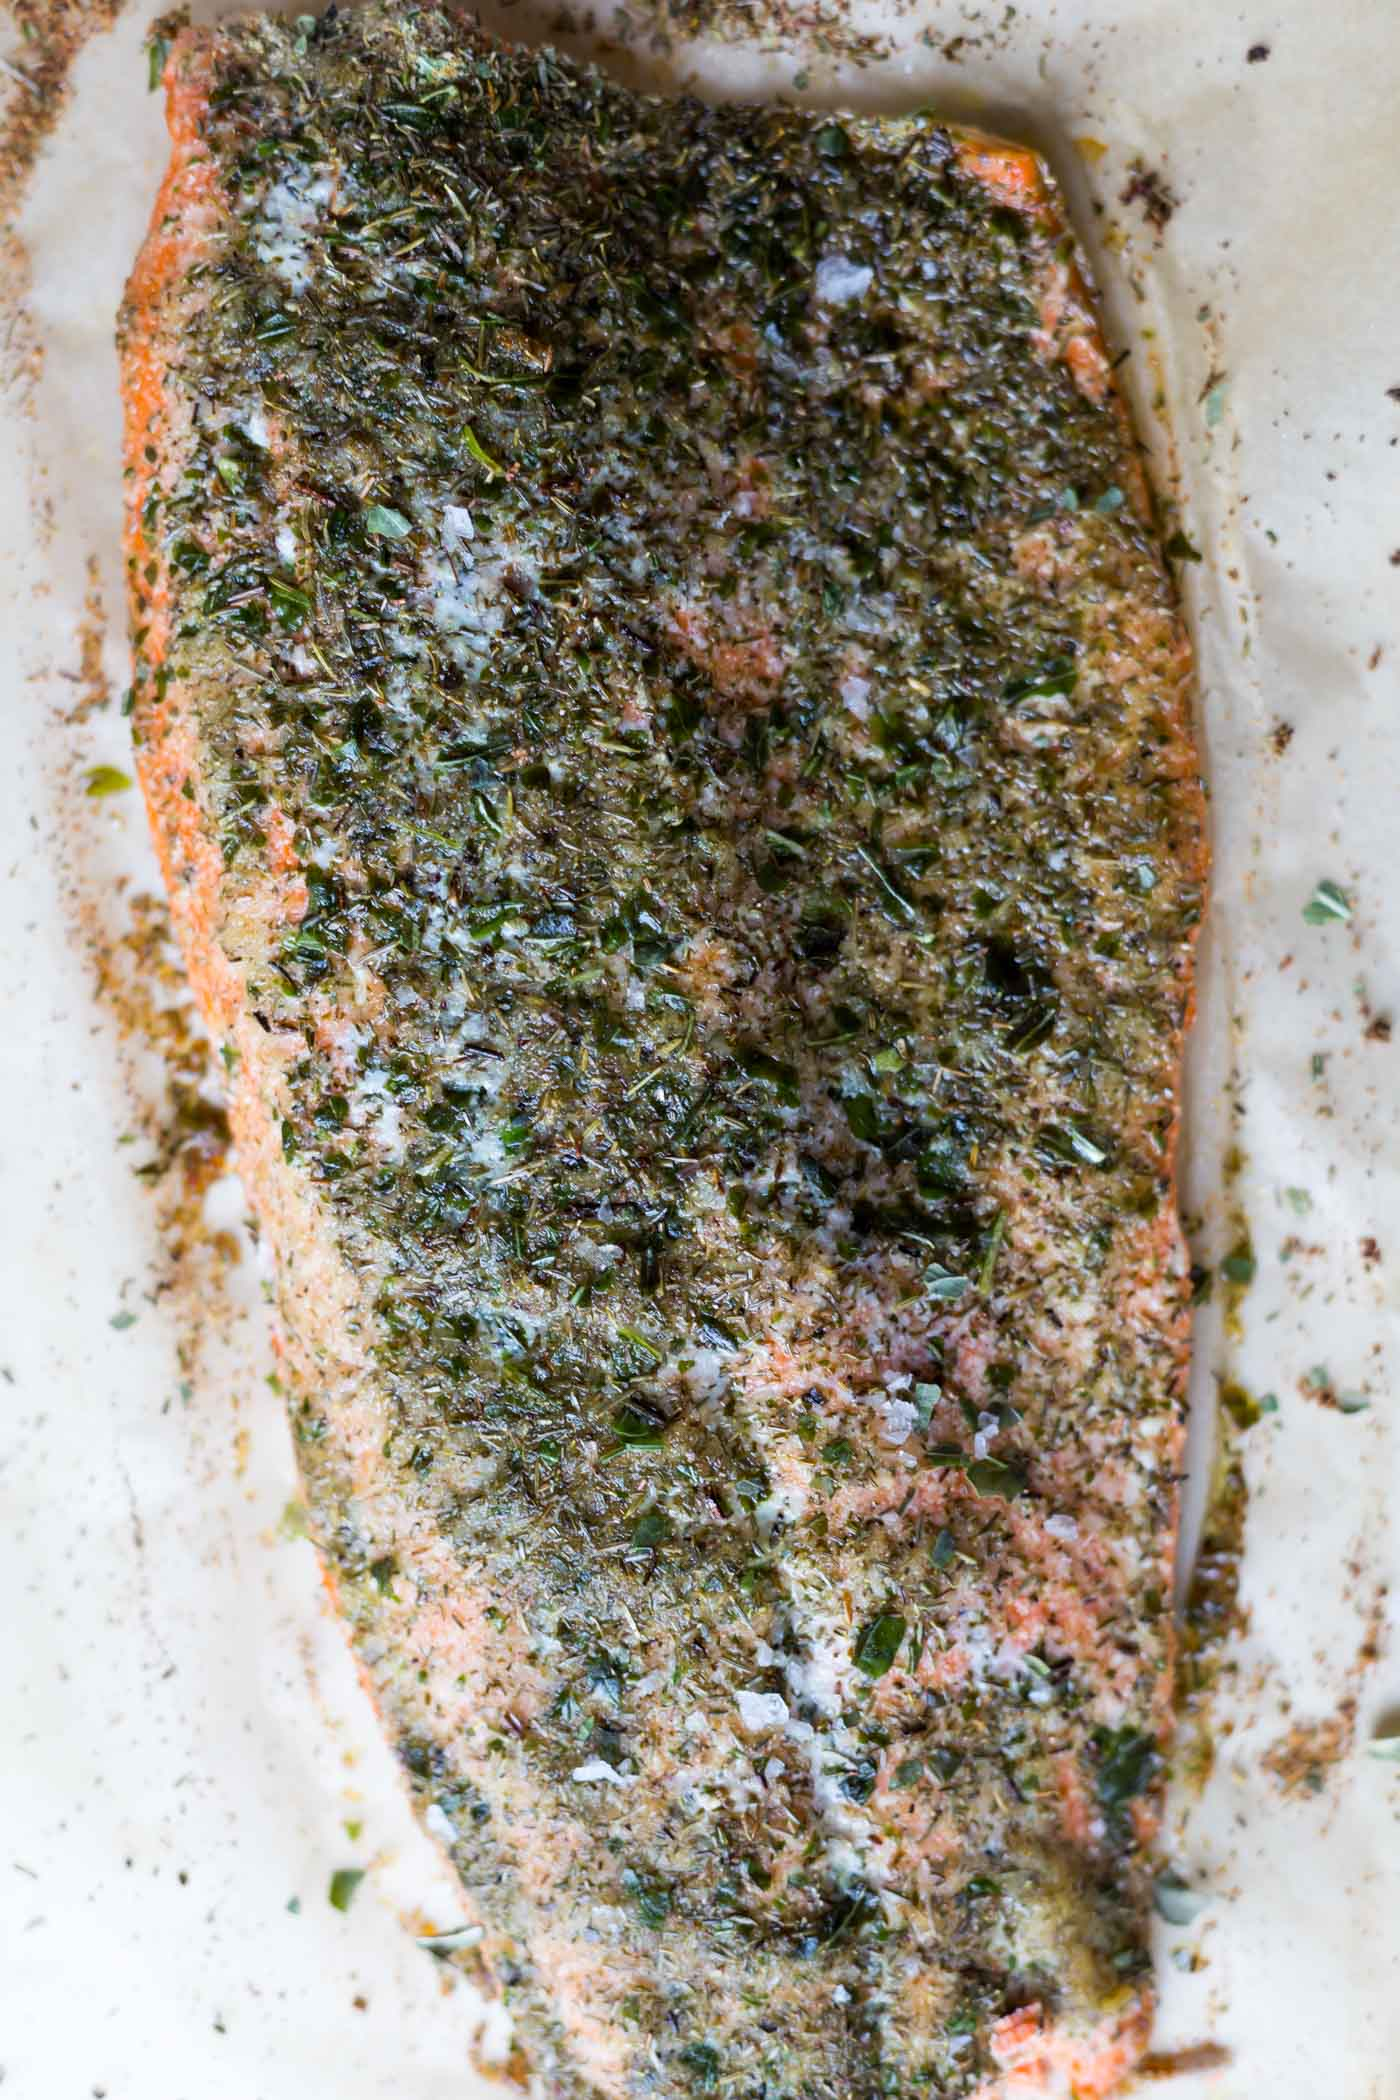 Oven baked salmon fillet on parchment paper with herbs and seasonings